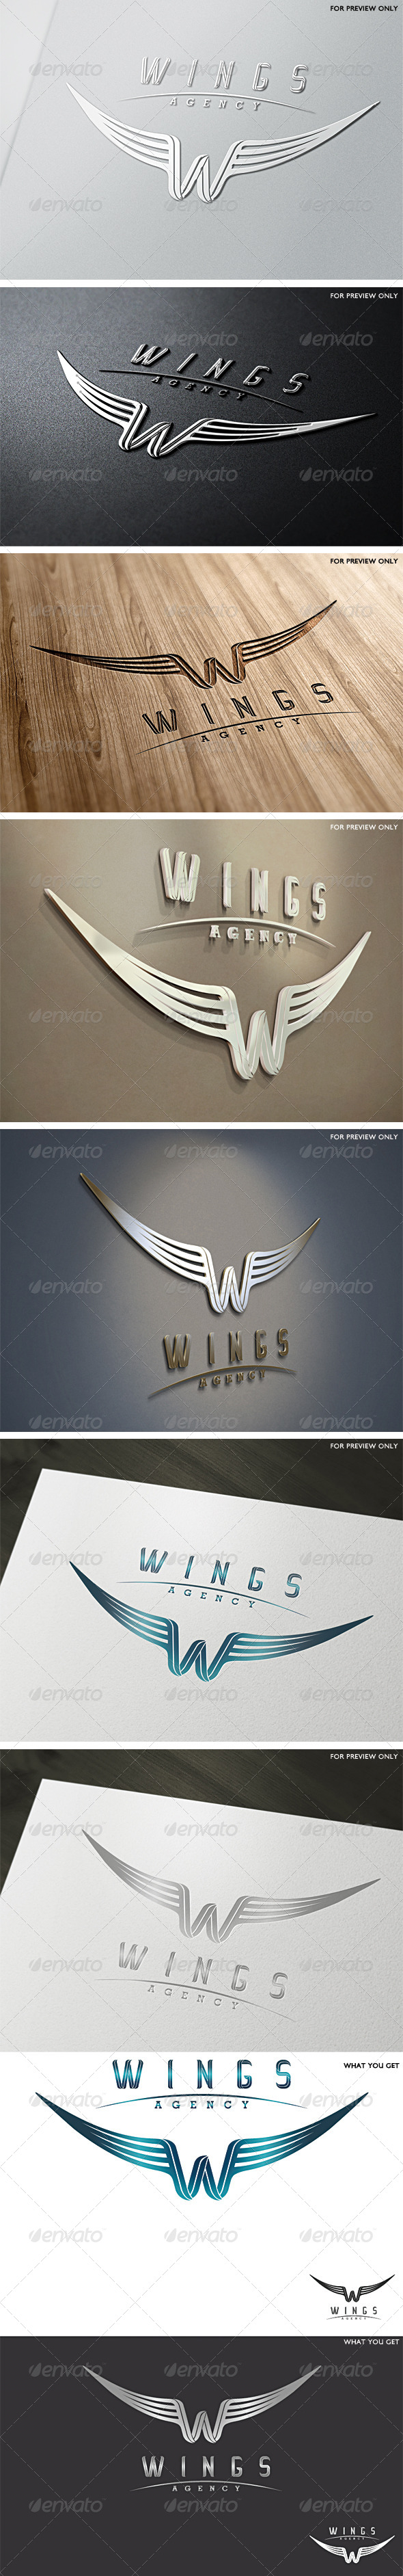 Wings Agency Letter W Logo Template - Letters Logo Templates